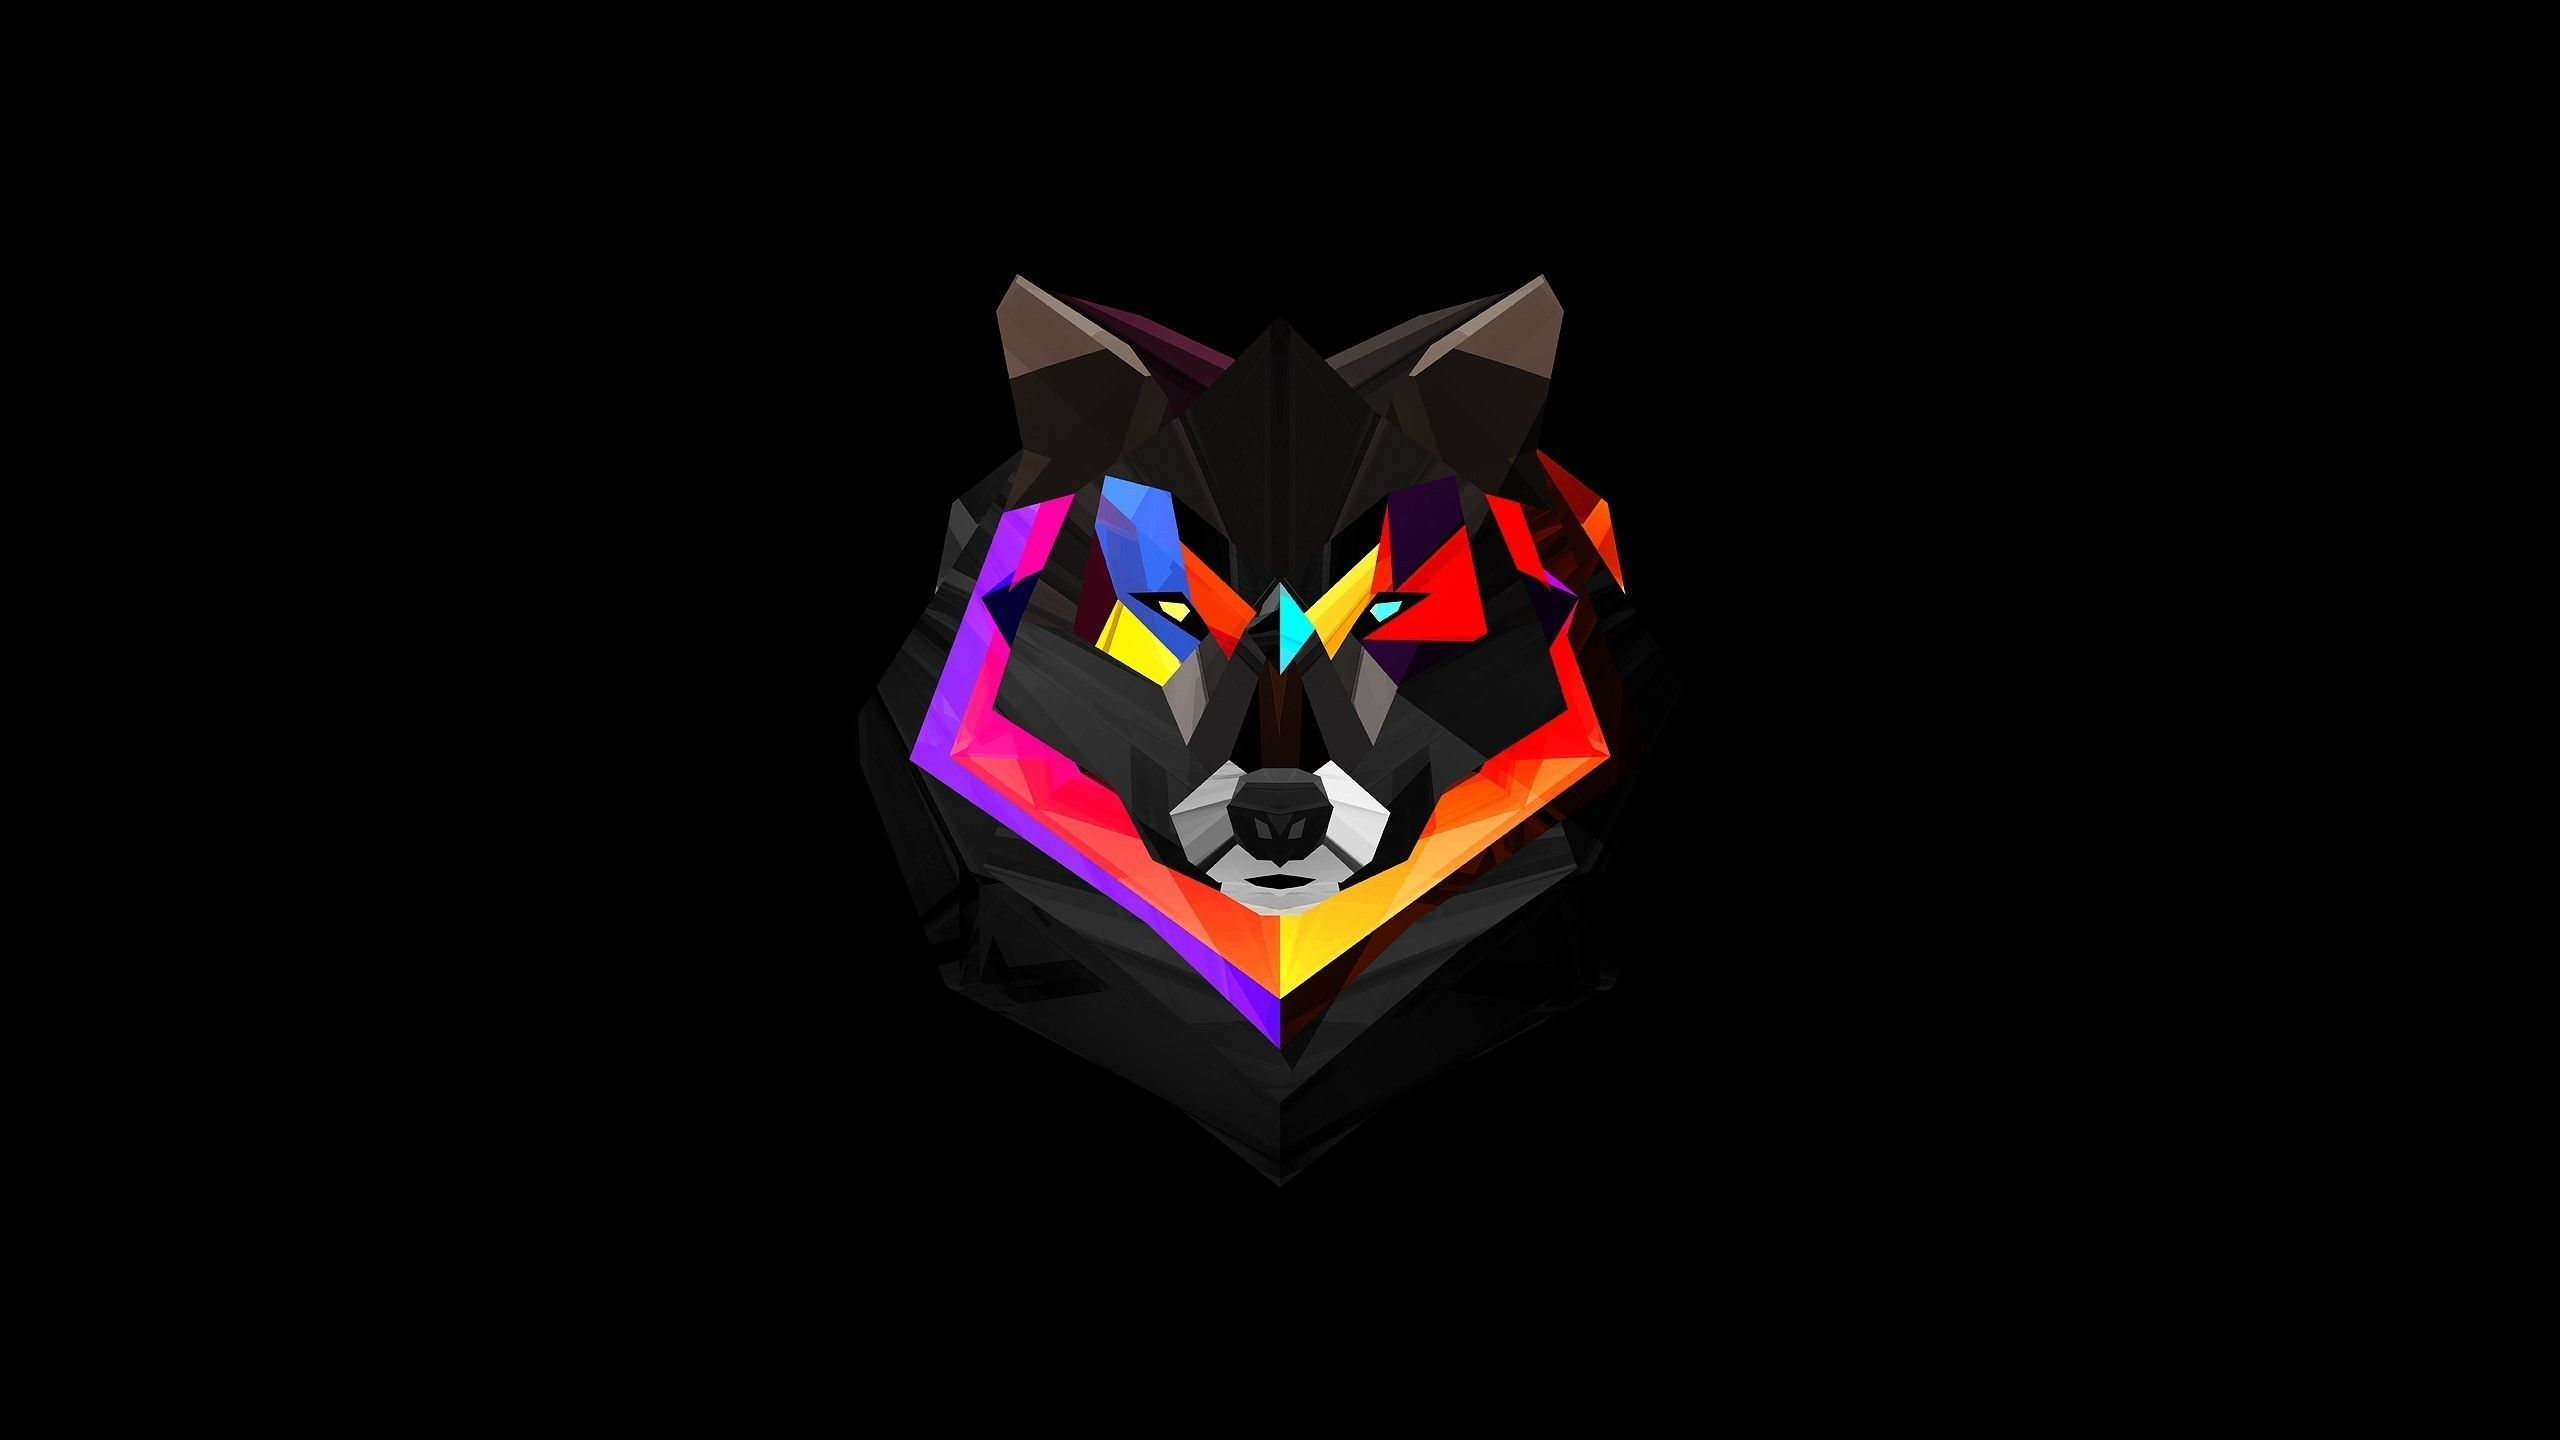 General 2560x1440 Abstract Wolf Wolf Wallpaper Geometric